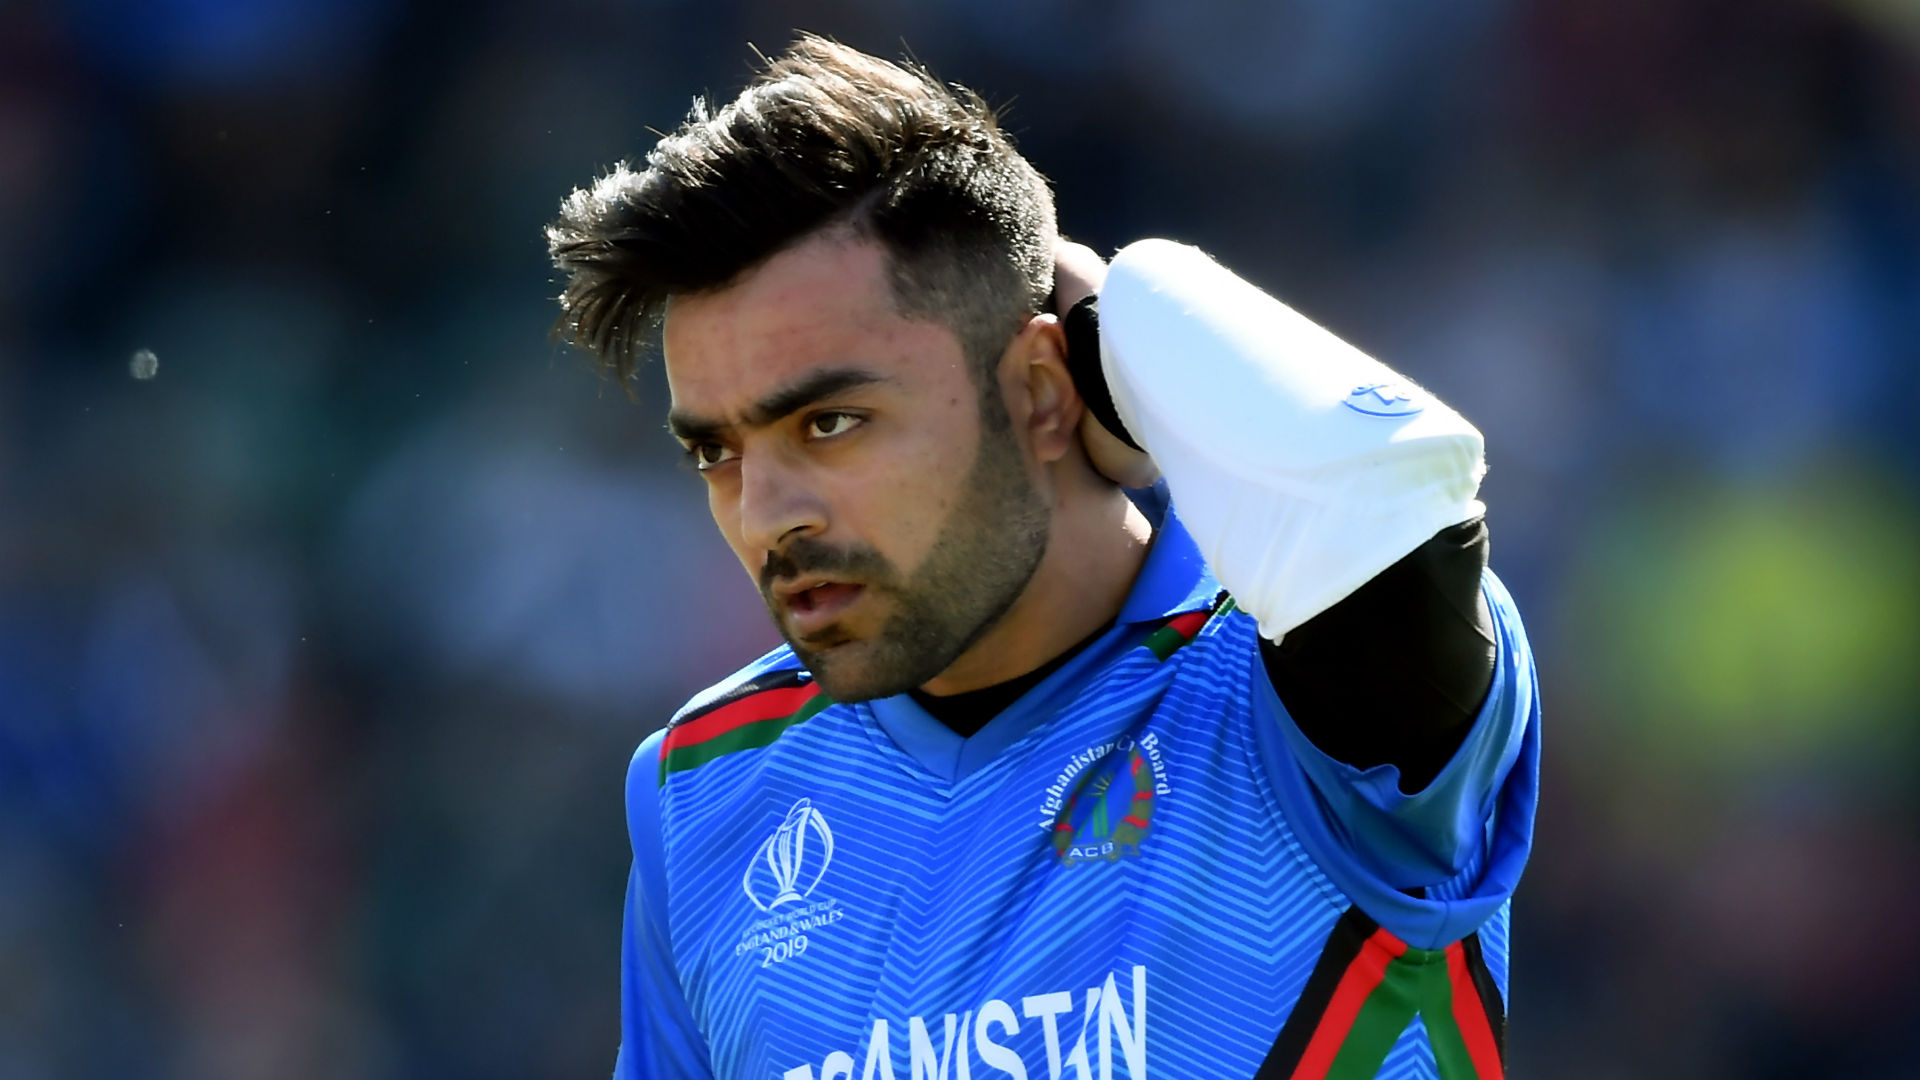 Rashid Khan will captain Afghanistan in all three formats as the nation try and move forward from a turbulent Cricket World Cup campaign.